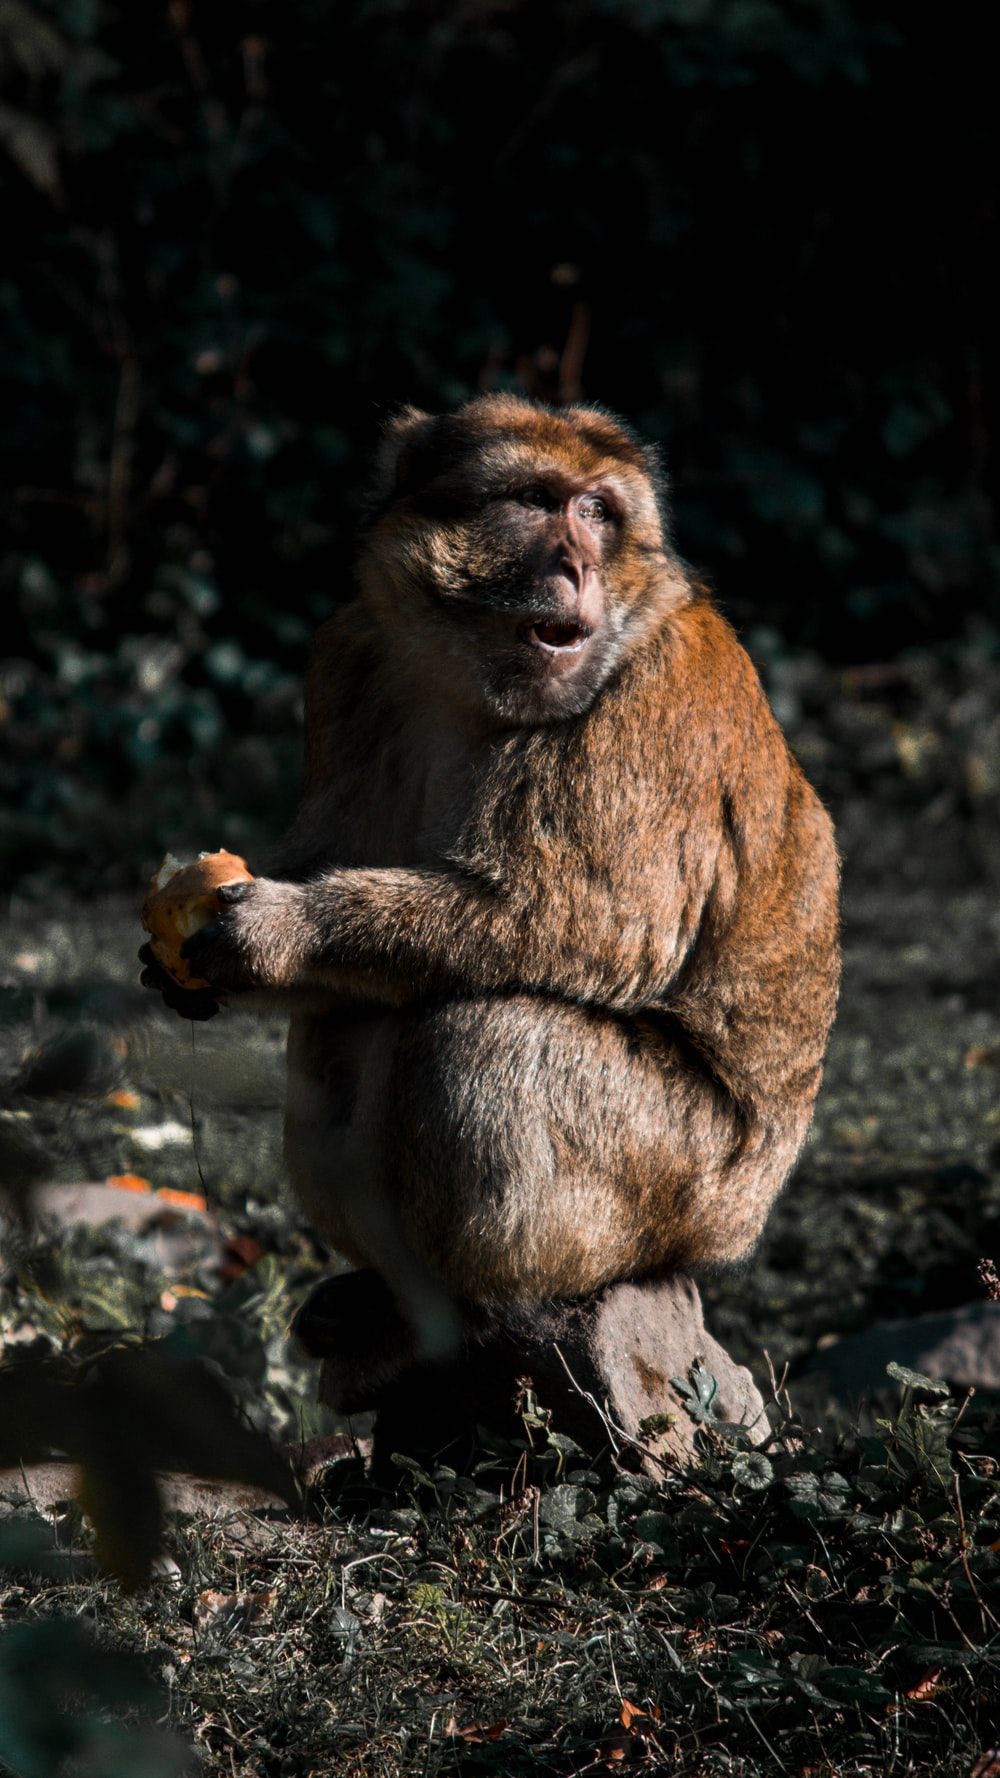 primate sitting on wood slab